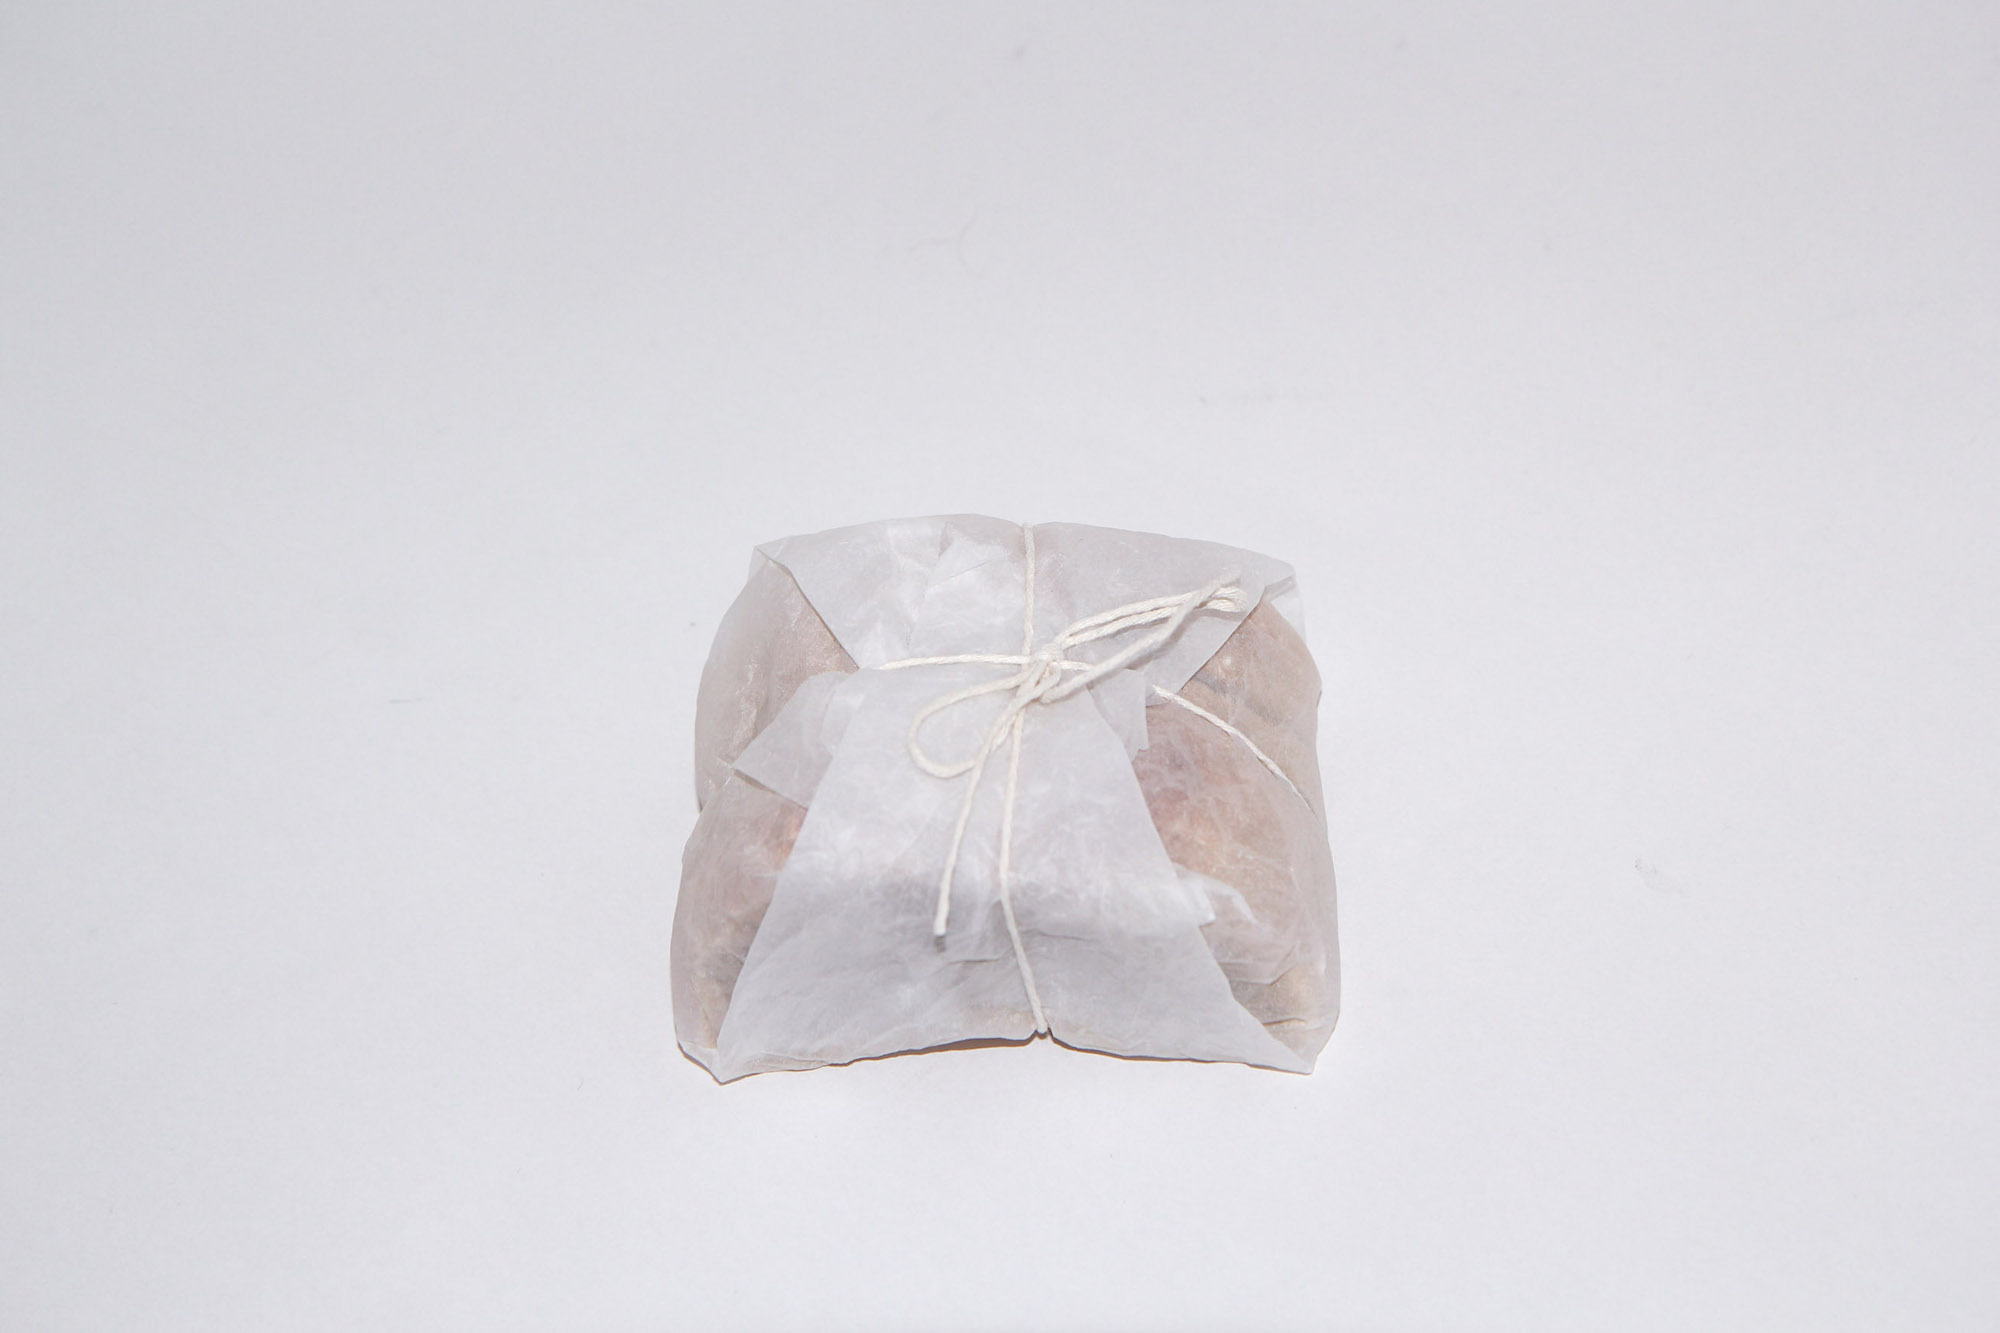 Bread wrapped in paper